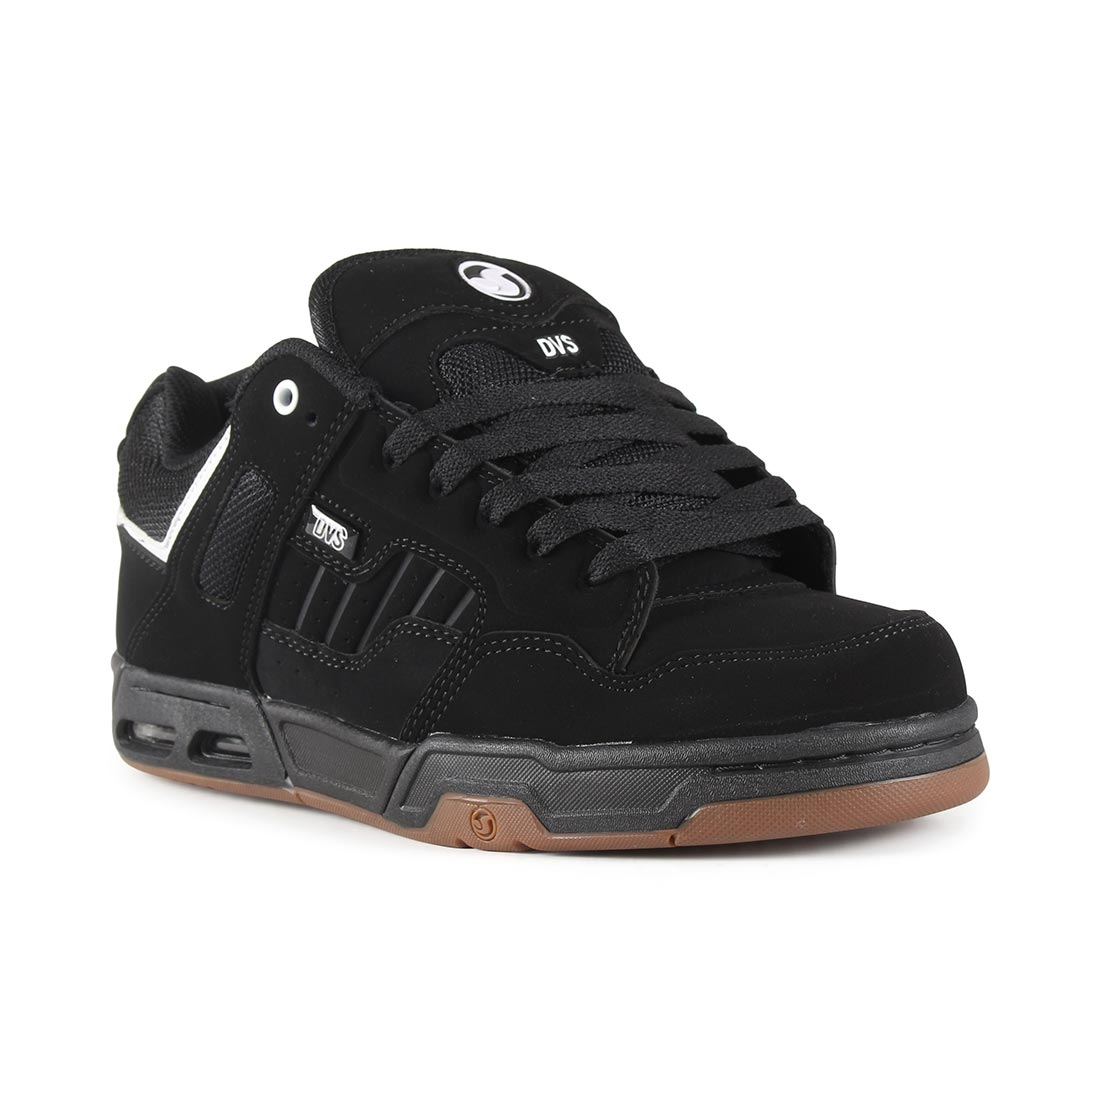 DVS Enduro Heir Shoes - Black / White Nubuck